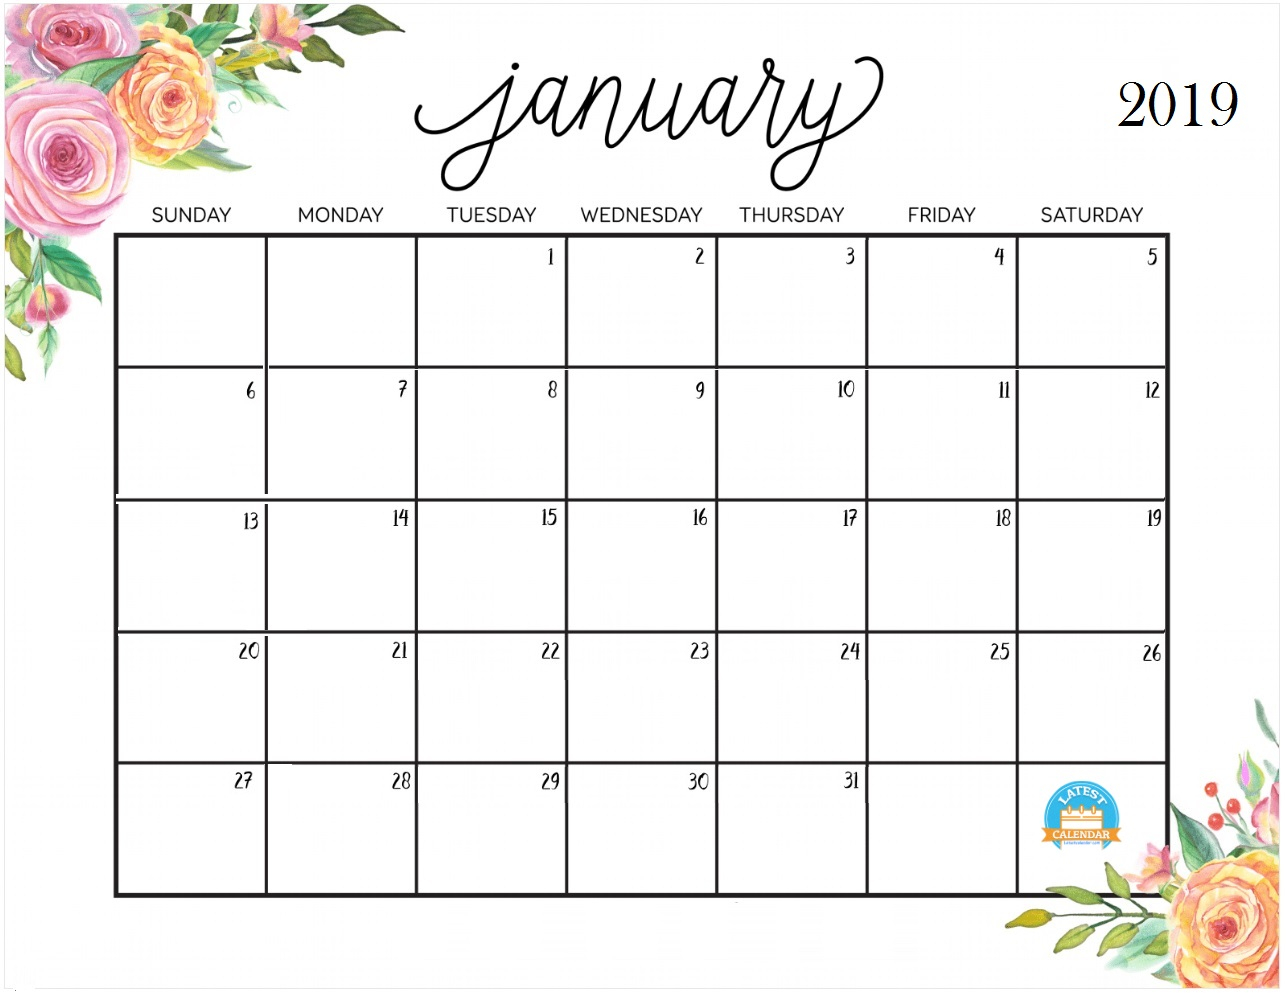 January 2019 Personalized Calendar